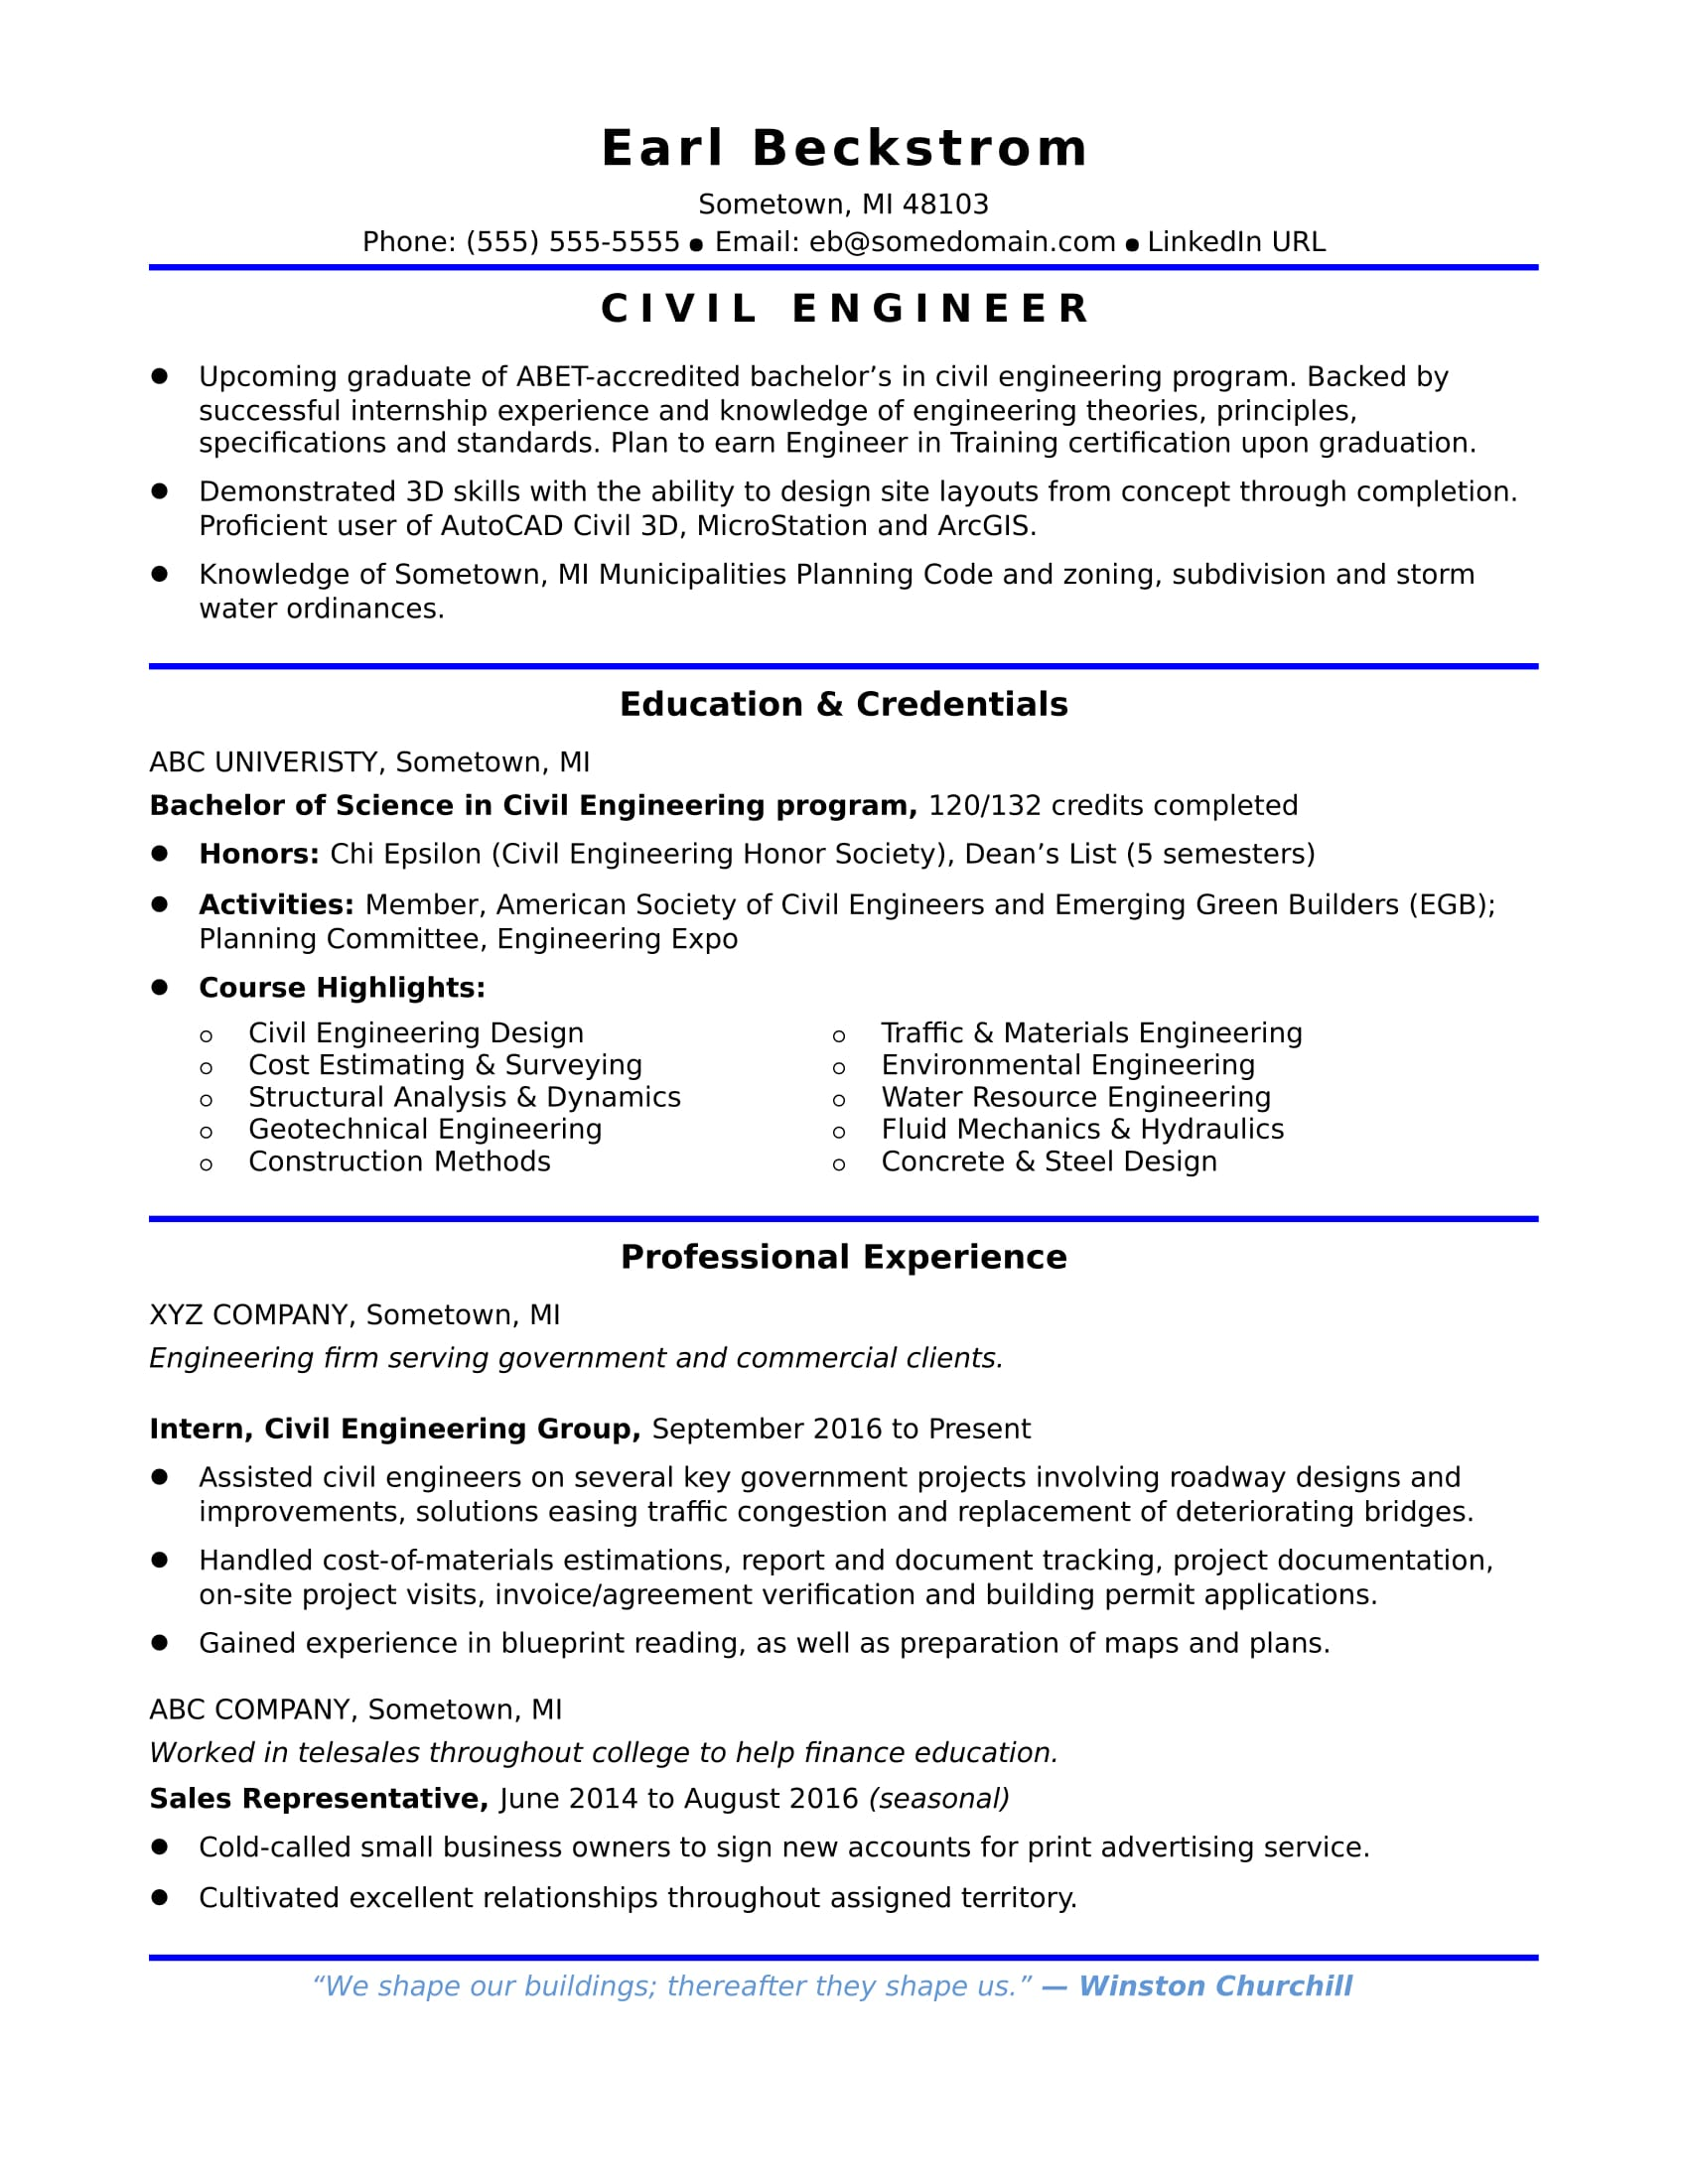 Sample Resume For An Entry Level Civil Engineer  Sample Resume Entry Level